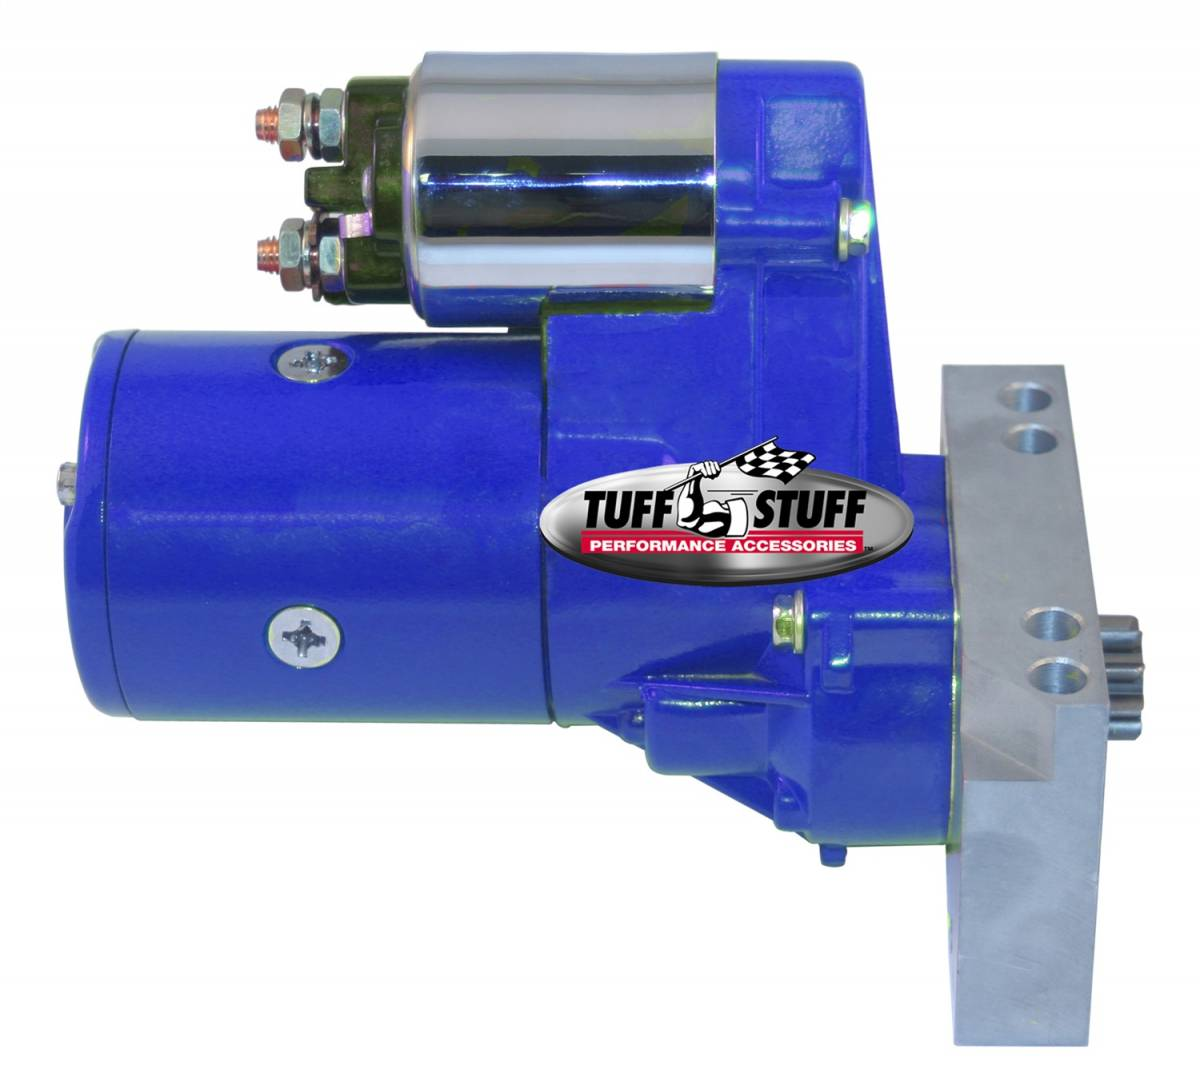 Tuff Stuff Performance - Gear Reduction Starter 1.4 KW 1.9 HP w/Straight Mounting Block 153 or 168 Tooth Flywheel Blue Powdercoat w/Chrome Accents 6584BBLUE